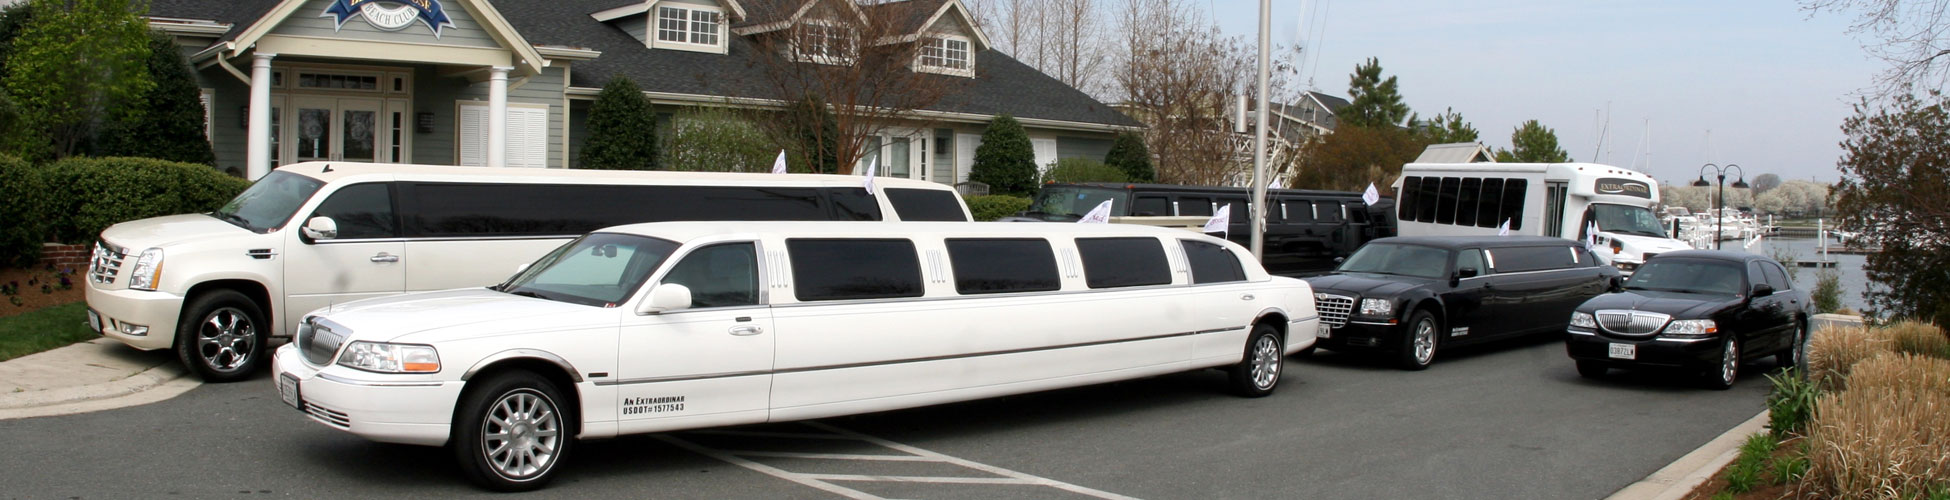 Our Fleet Limos Party Buses Suv Limos Baltimore Dc